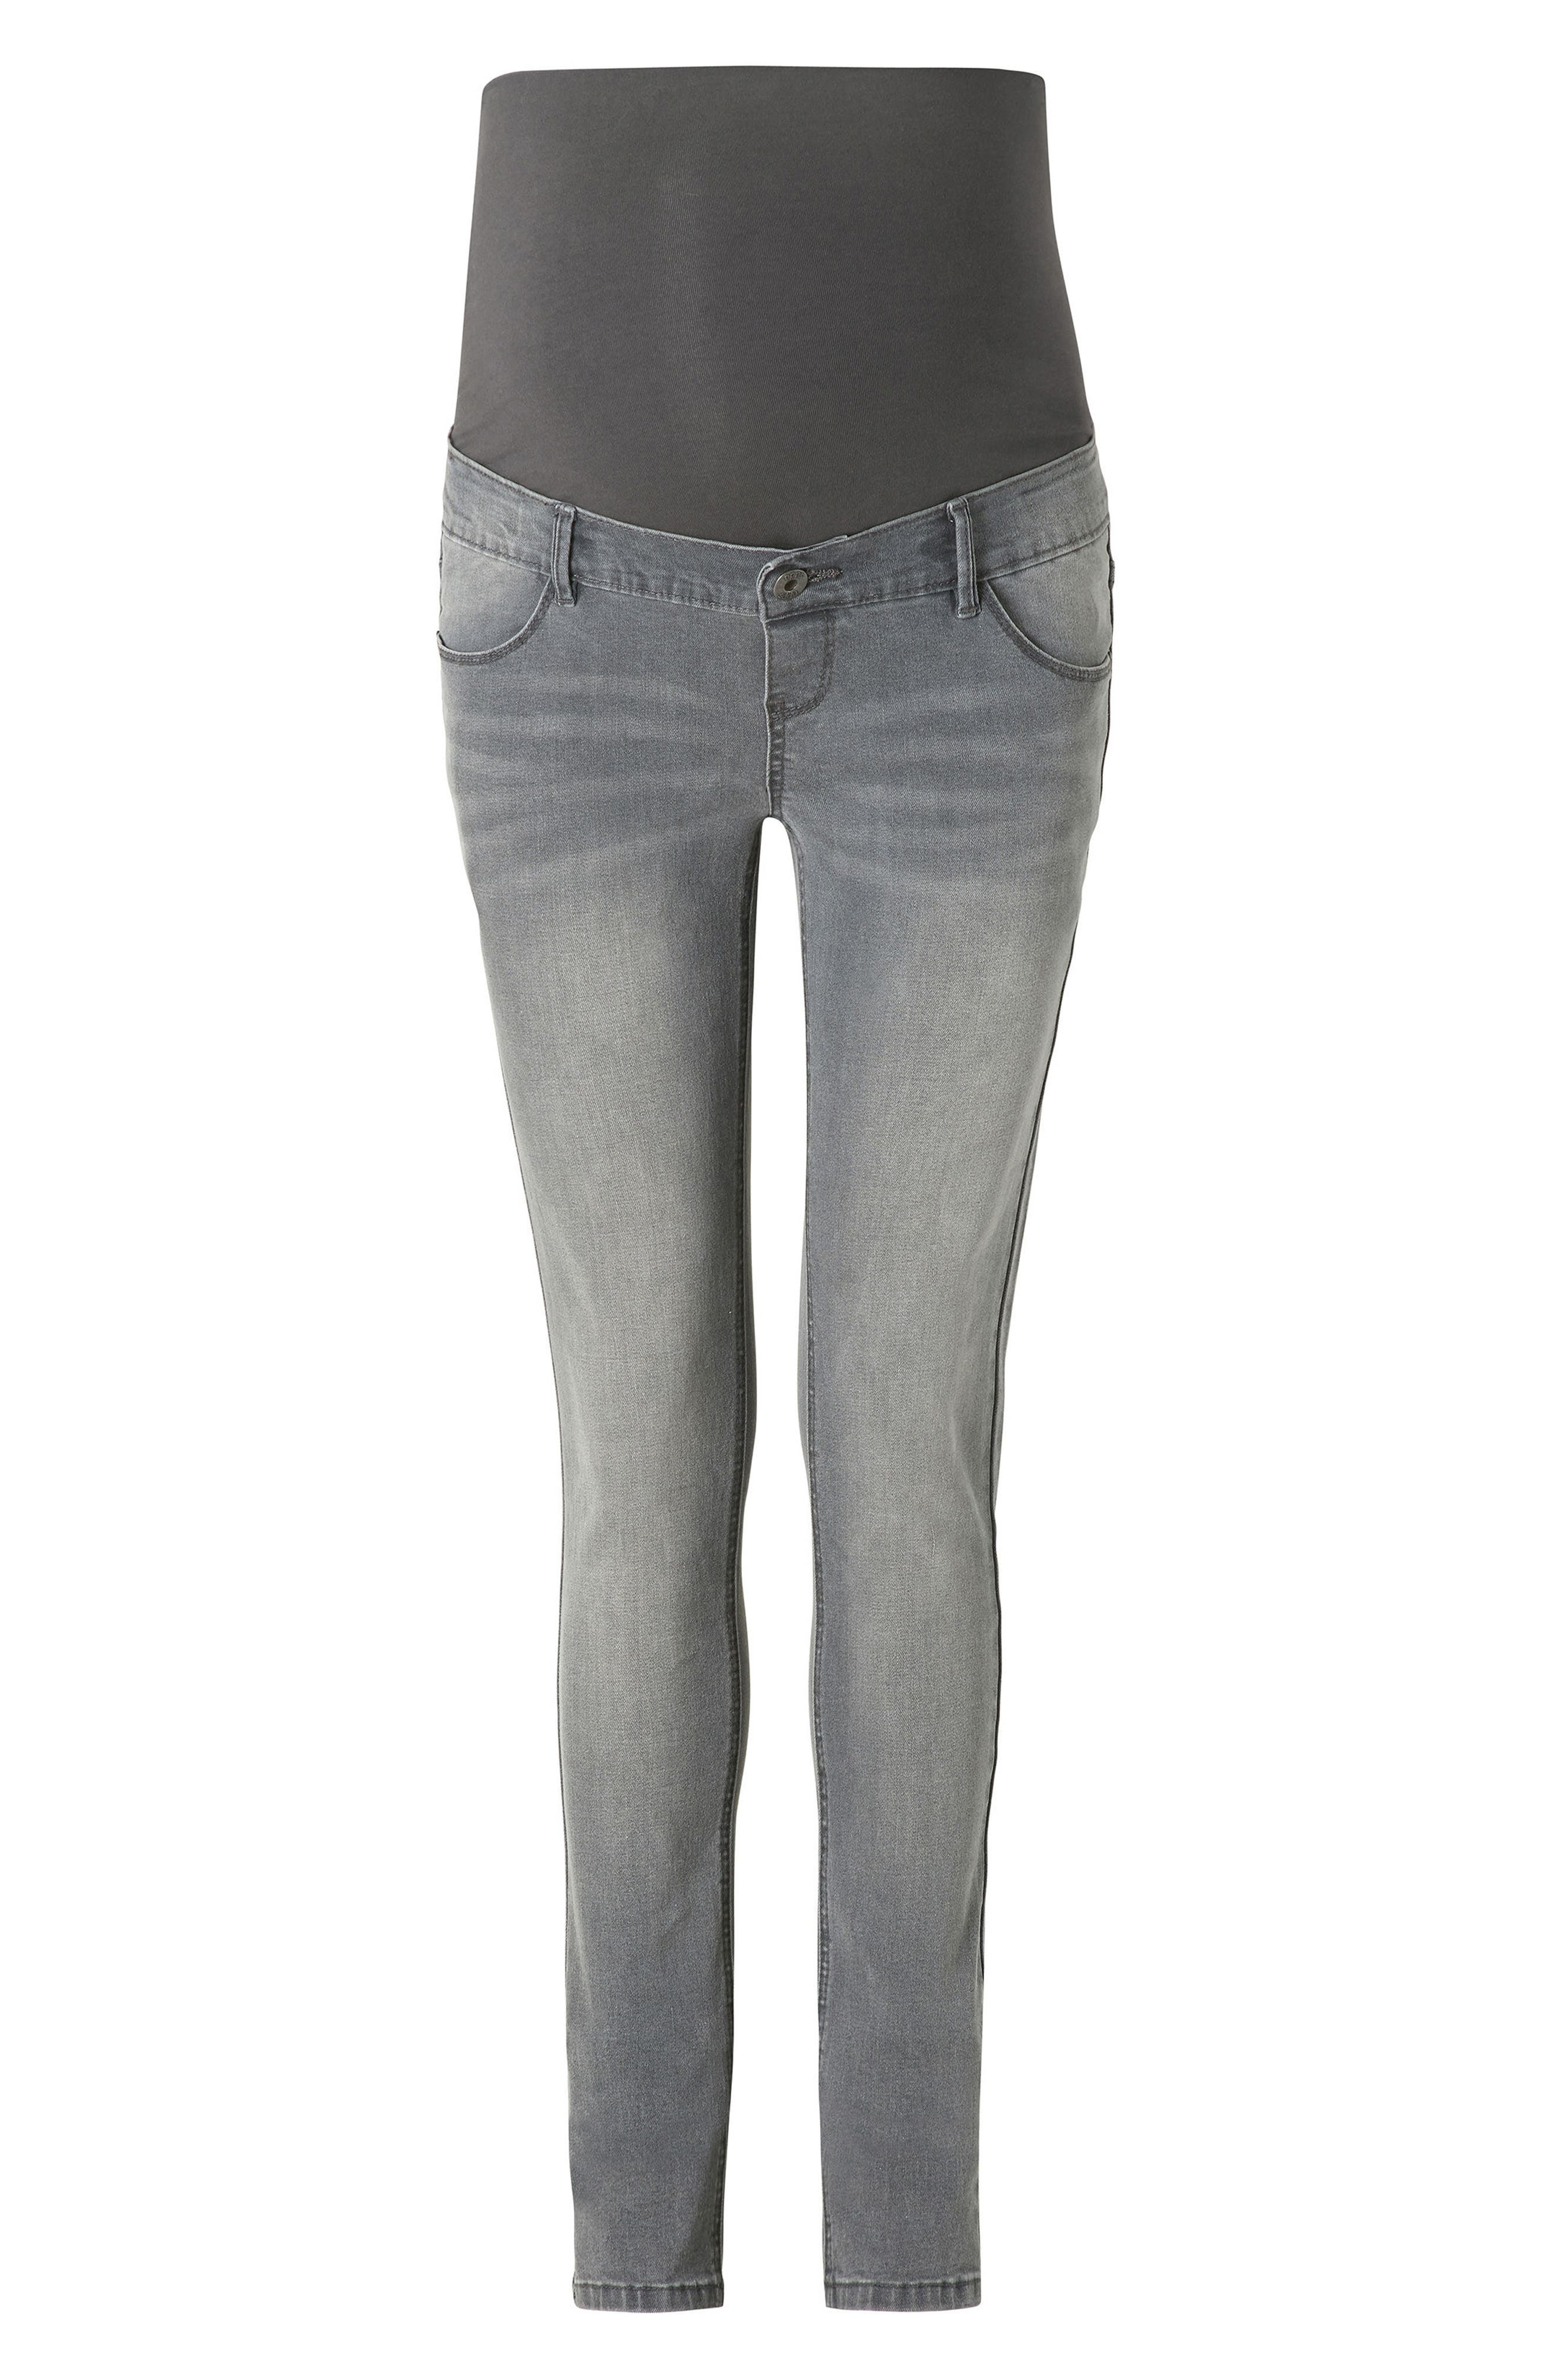 Avi Skinny Maternity Jeans,                             Main thumbnail 1, color,                             Grey Denim